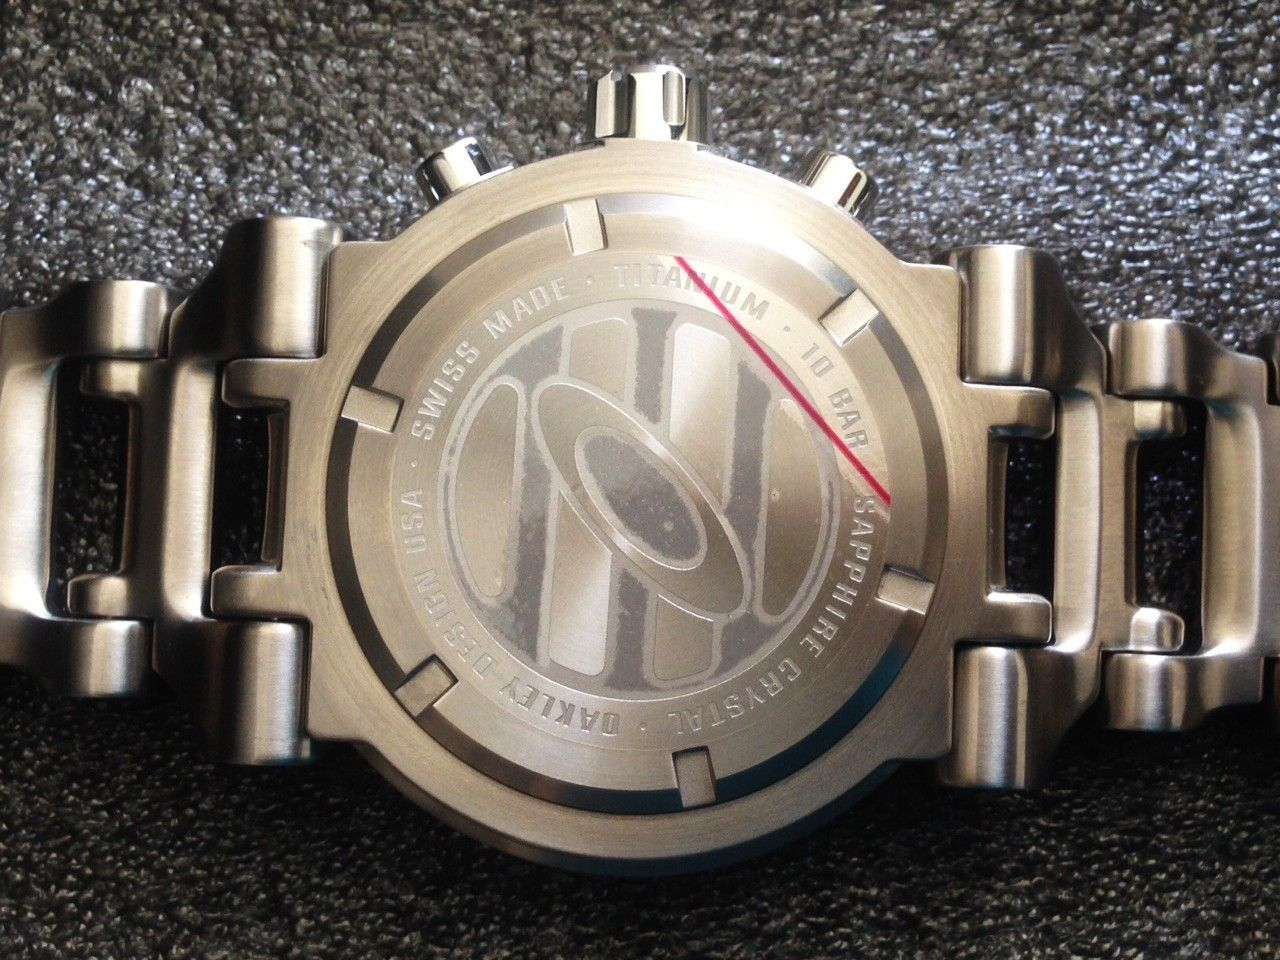 NEW IN BOX Hollow Point Titanium Watch White Dial 10-046 REDUCE PRICE 1,250 or Best Offer - 10.JPG